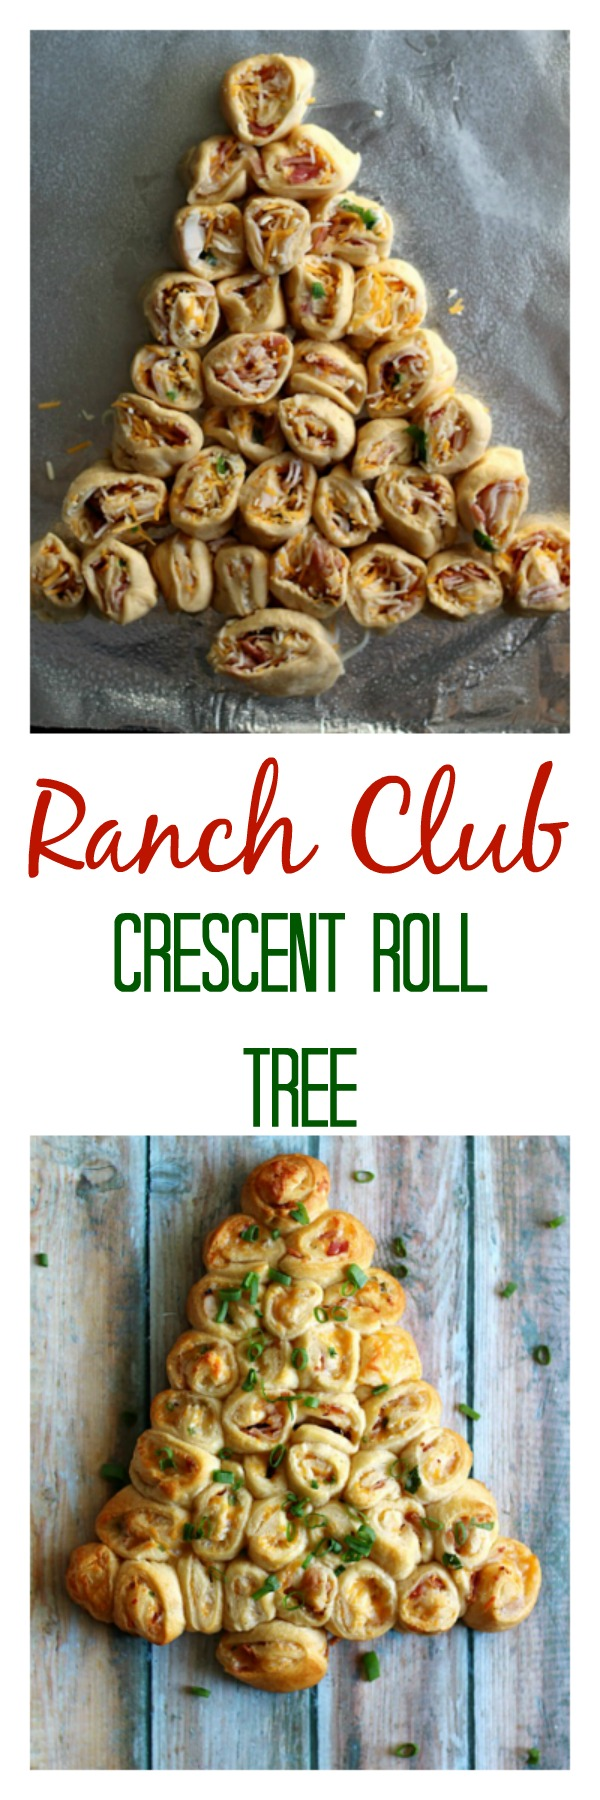 ranch-club-crescent-roll-tree